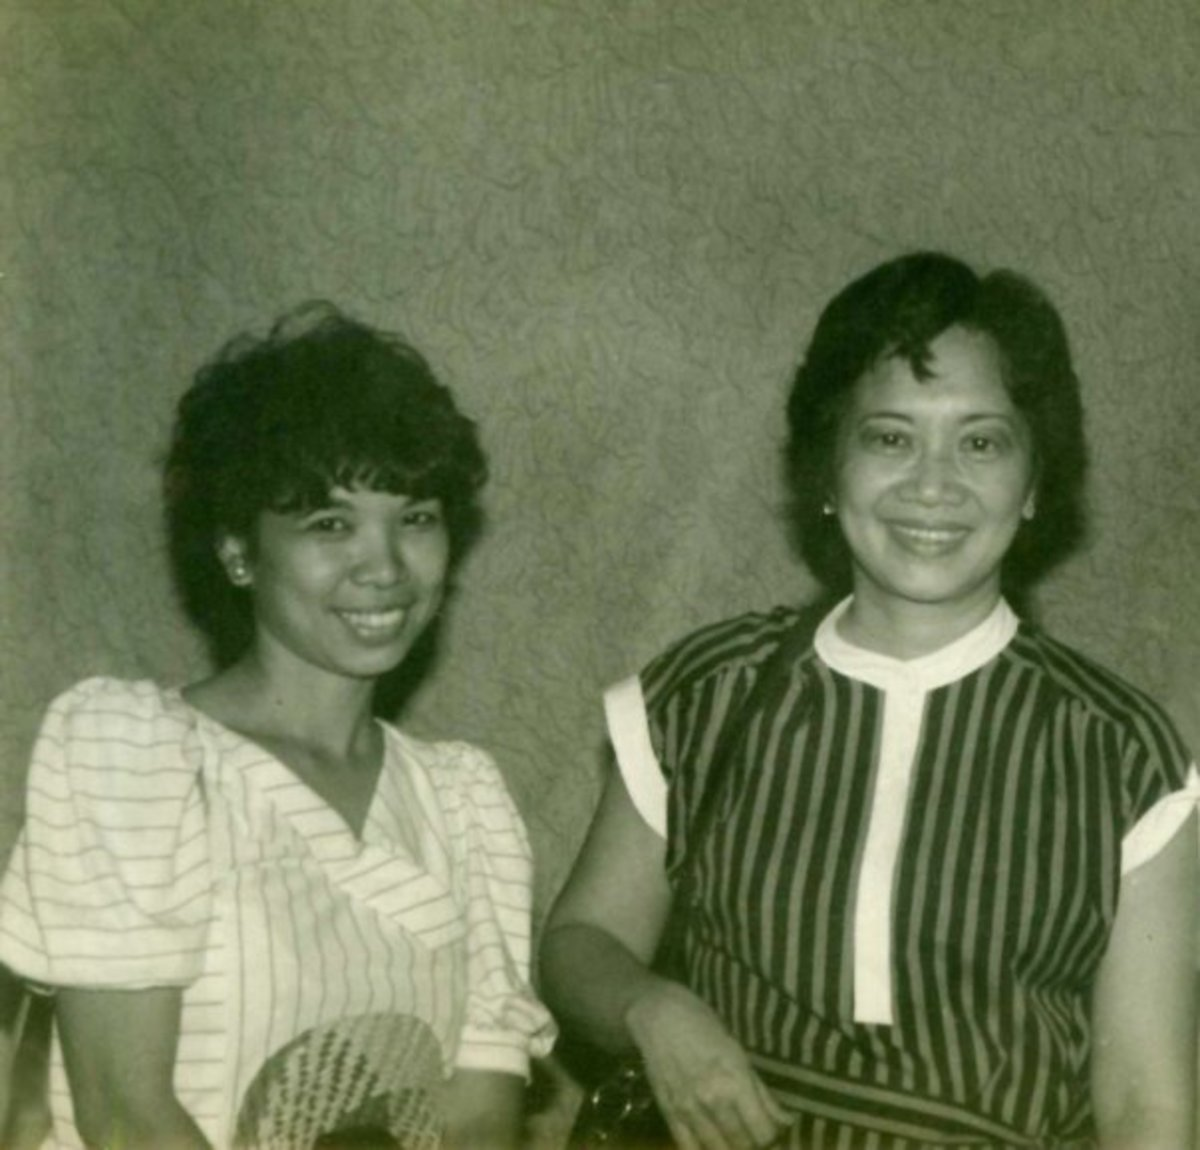 A very young me with the late President Corazon Aquino